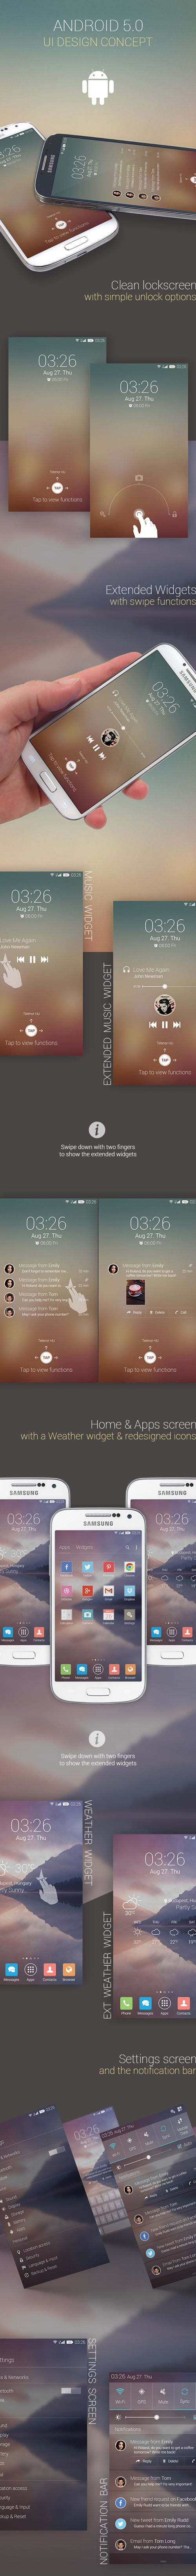 Android 5.0 UI Designs and Concepts for Inspiration